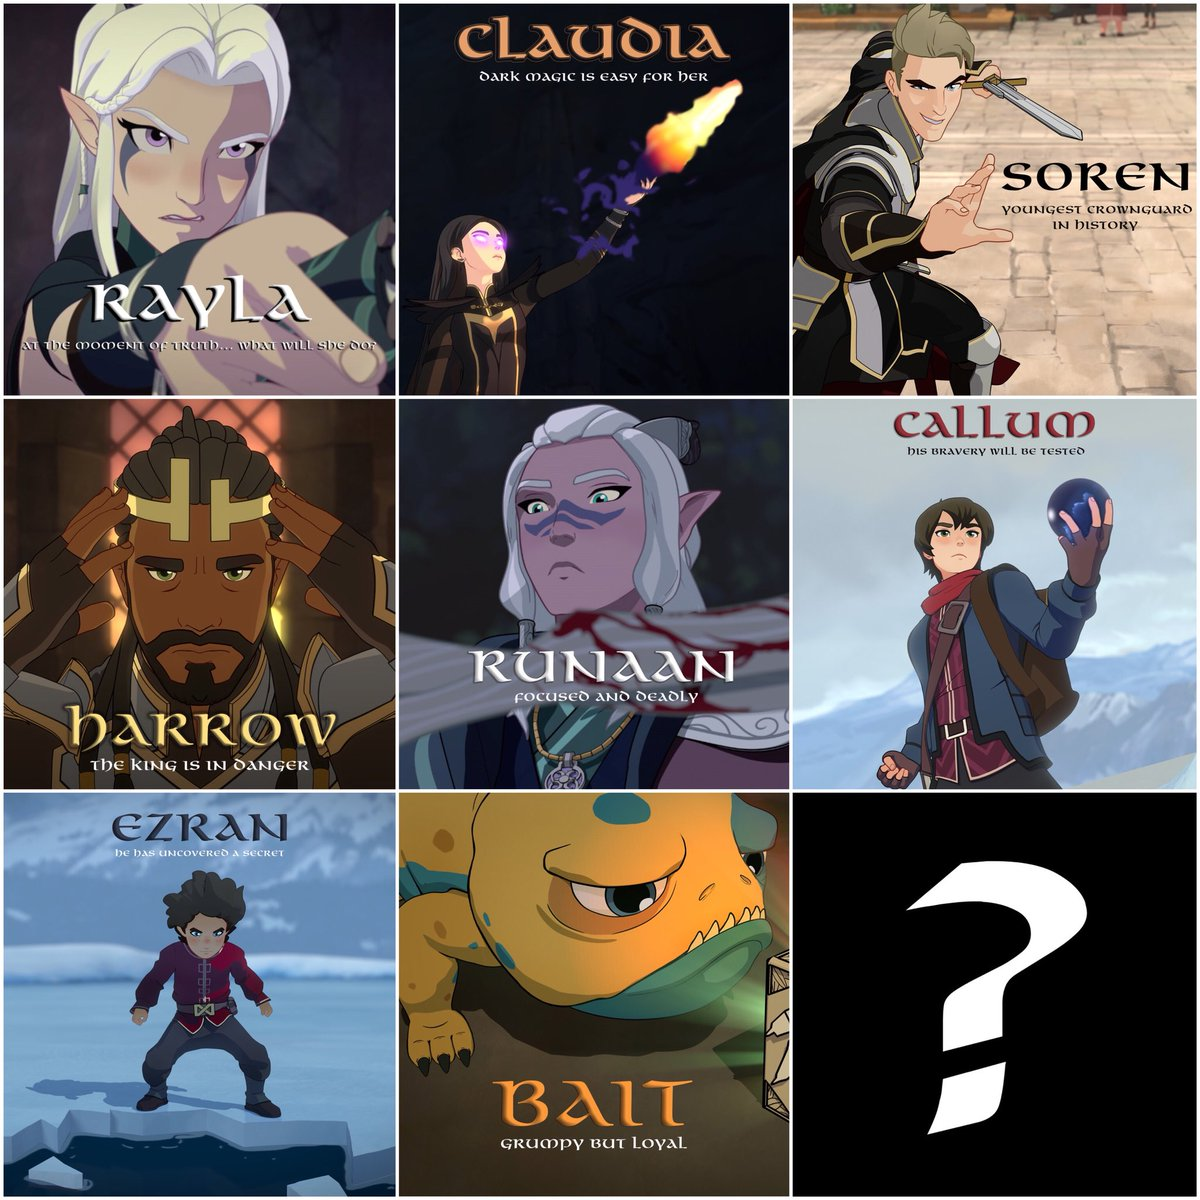 Who are the main characters of the fairy tale The Sea King and Vasilisa the Wise